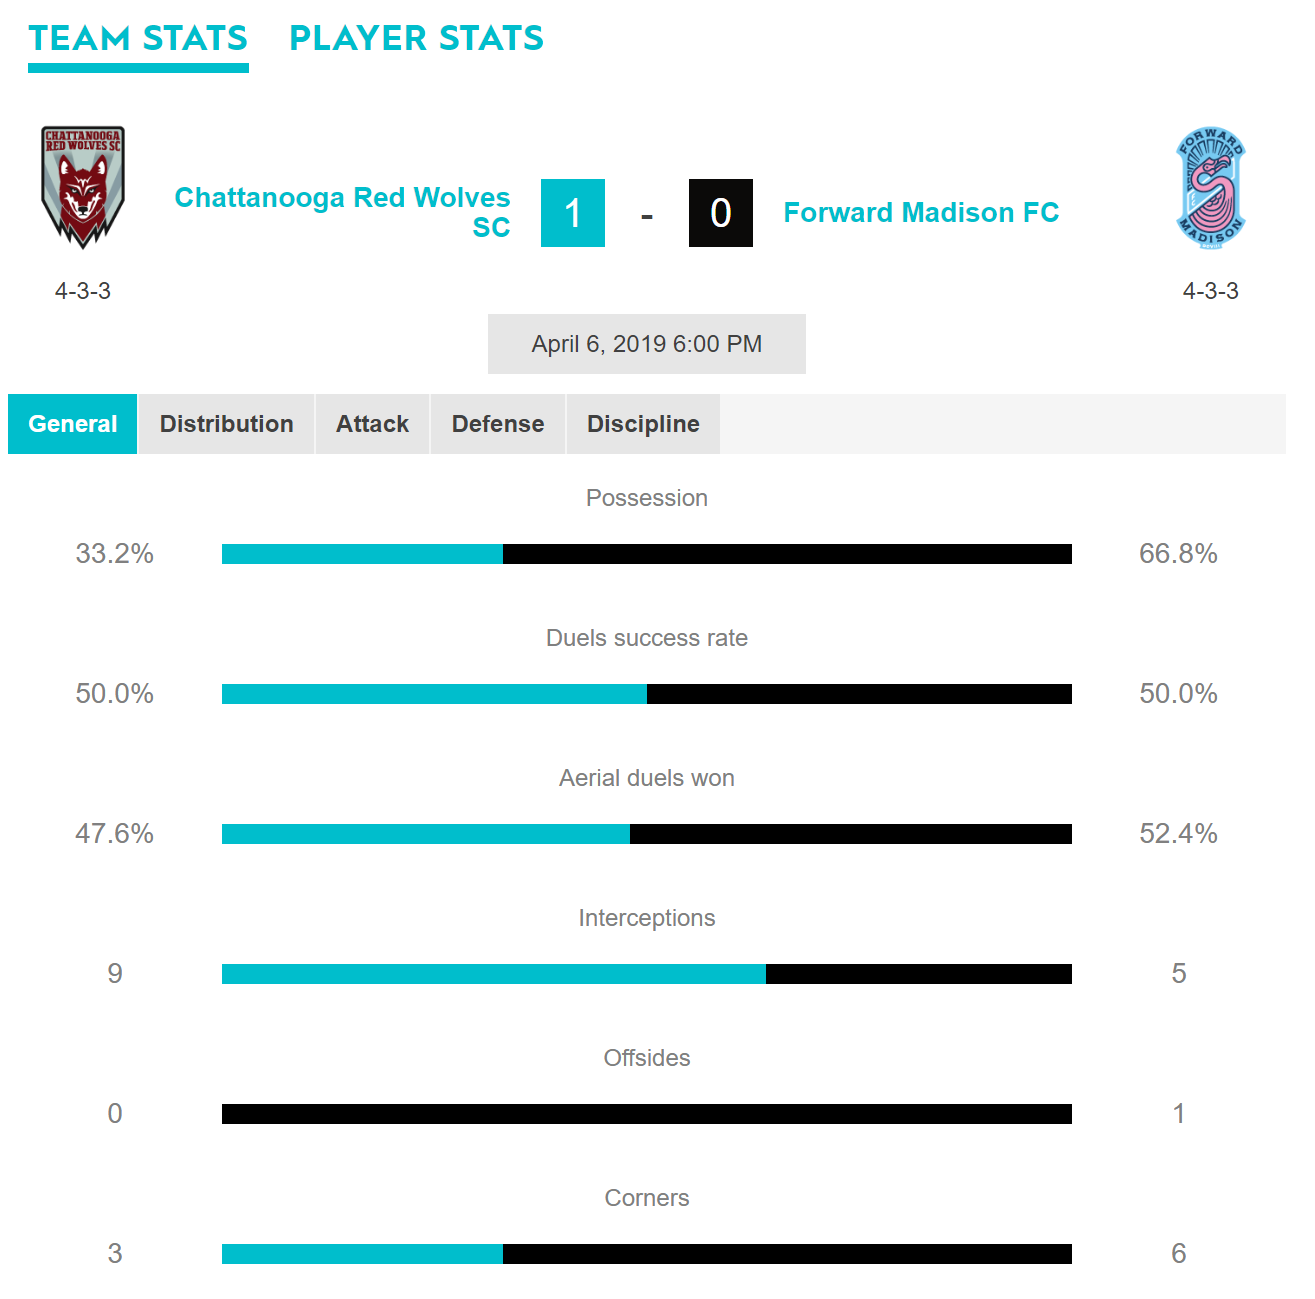 Team stats for Chattanooga Red Wolves SC and Forward Madison FC